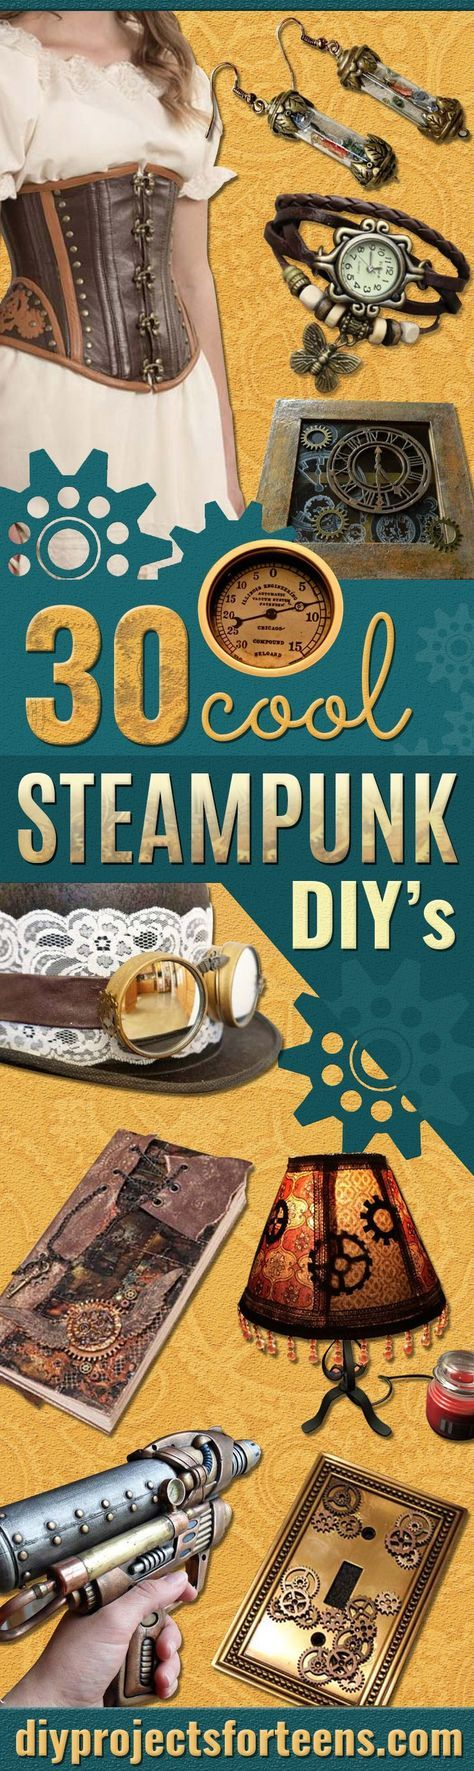 Best 10 steampunk diy ideas on pinterest steampunk for Most popular diy crafts